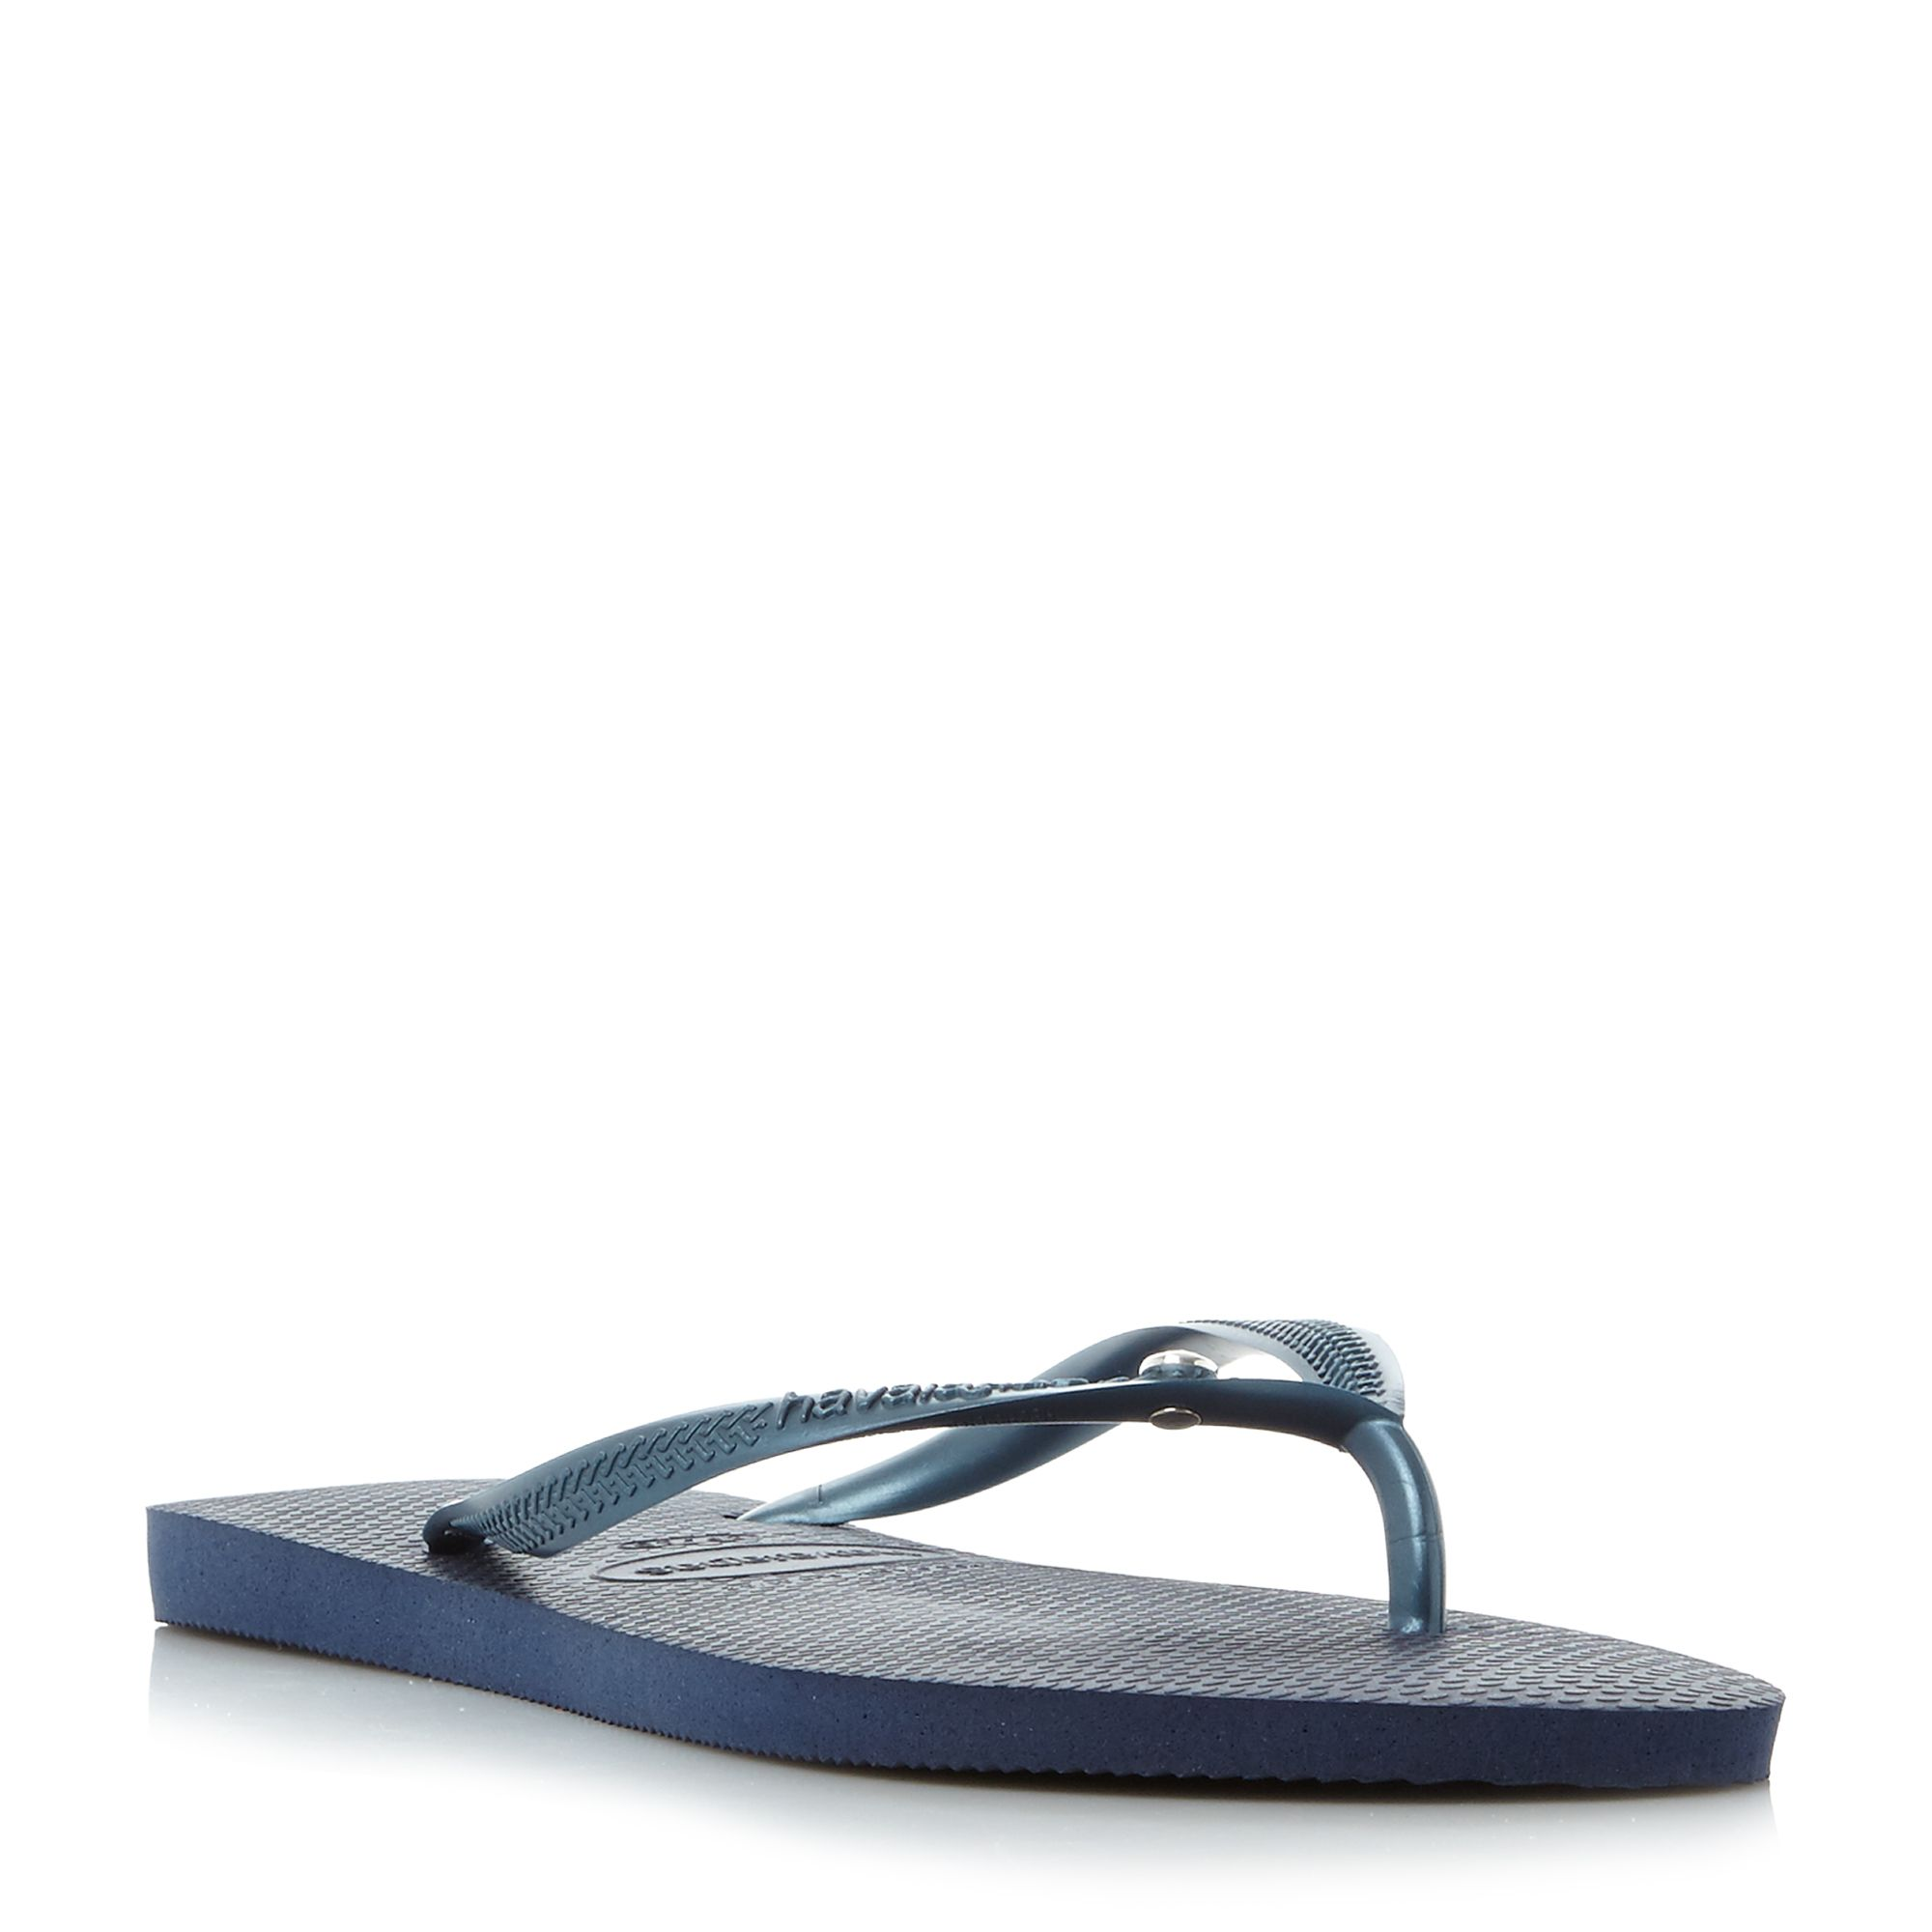 Buy cheap swarovski flip flops compare women 39 s footwear for How to find cheap houses to flip